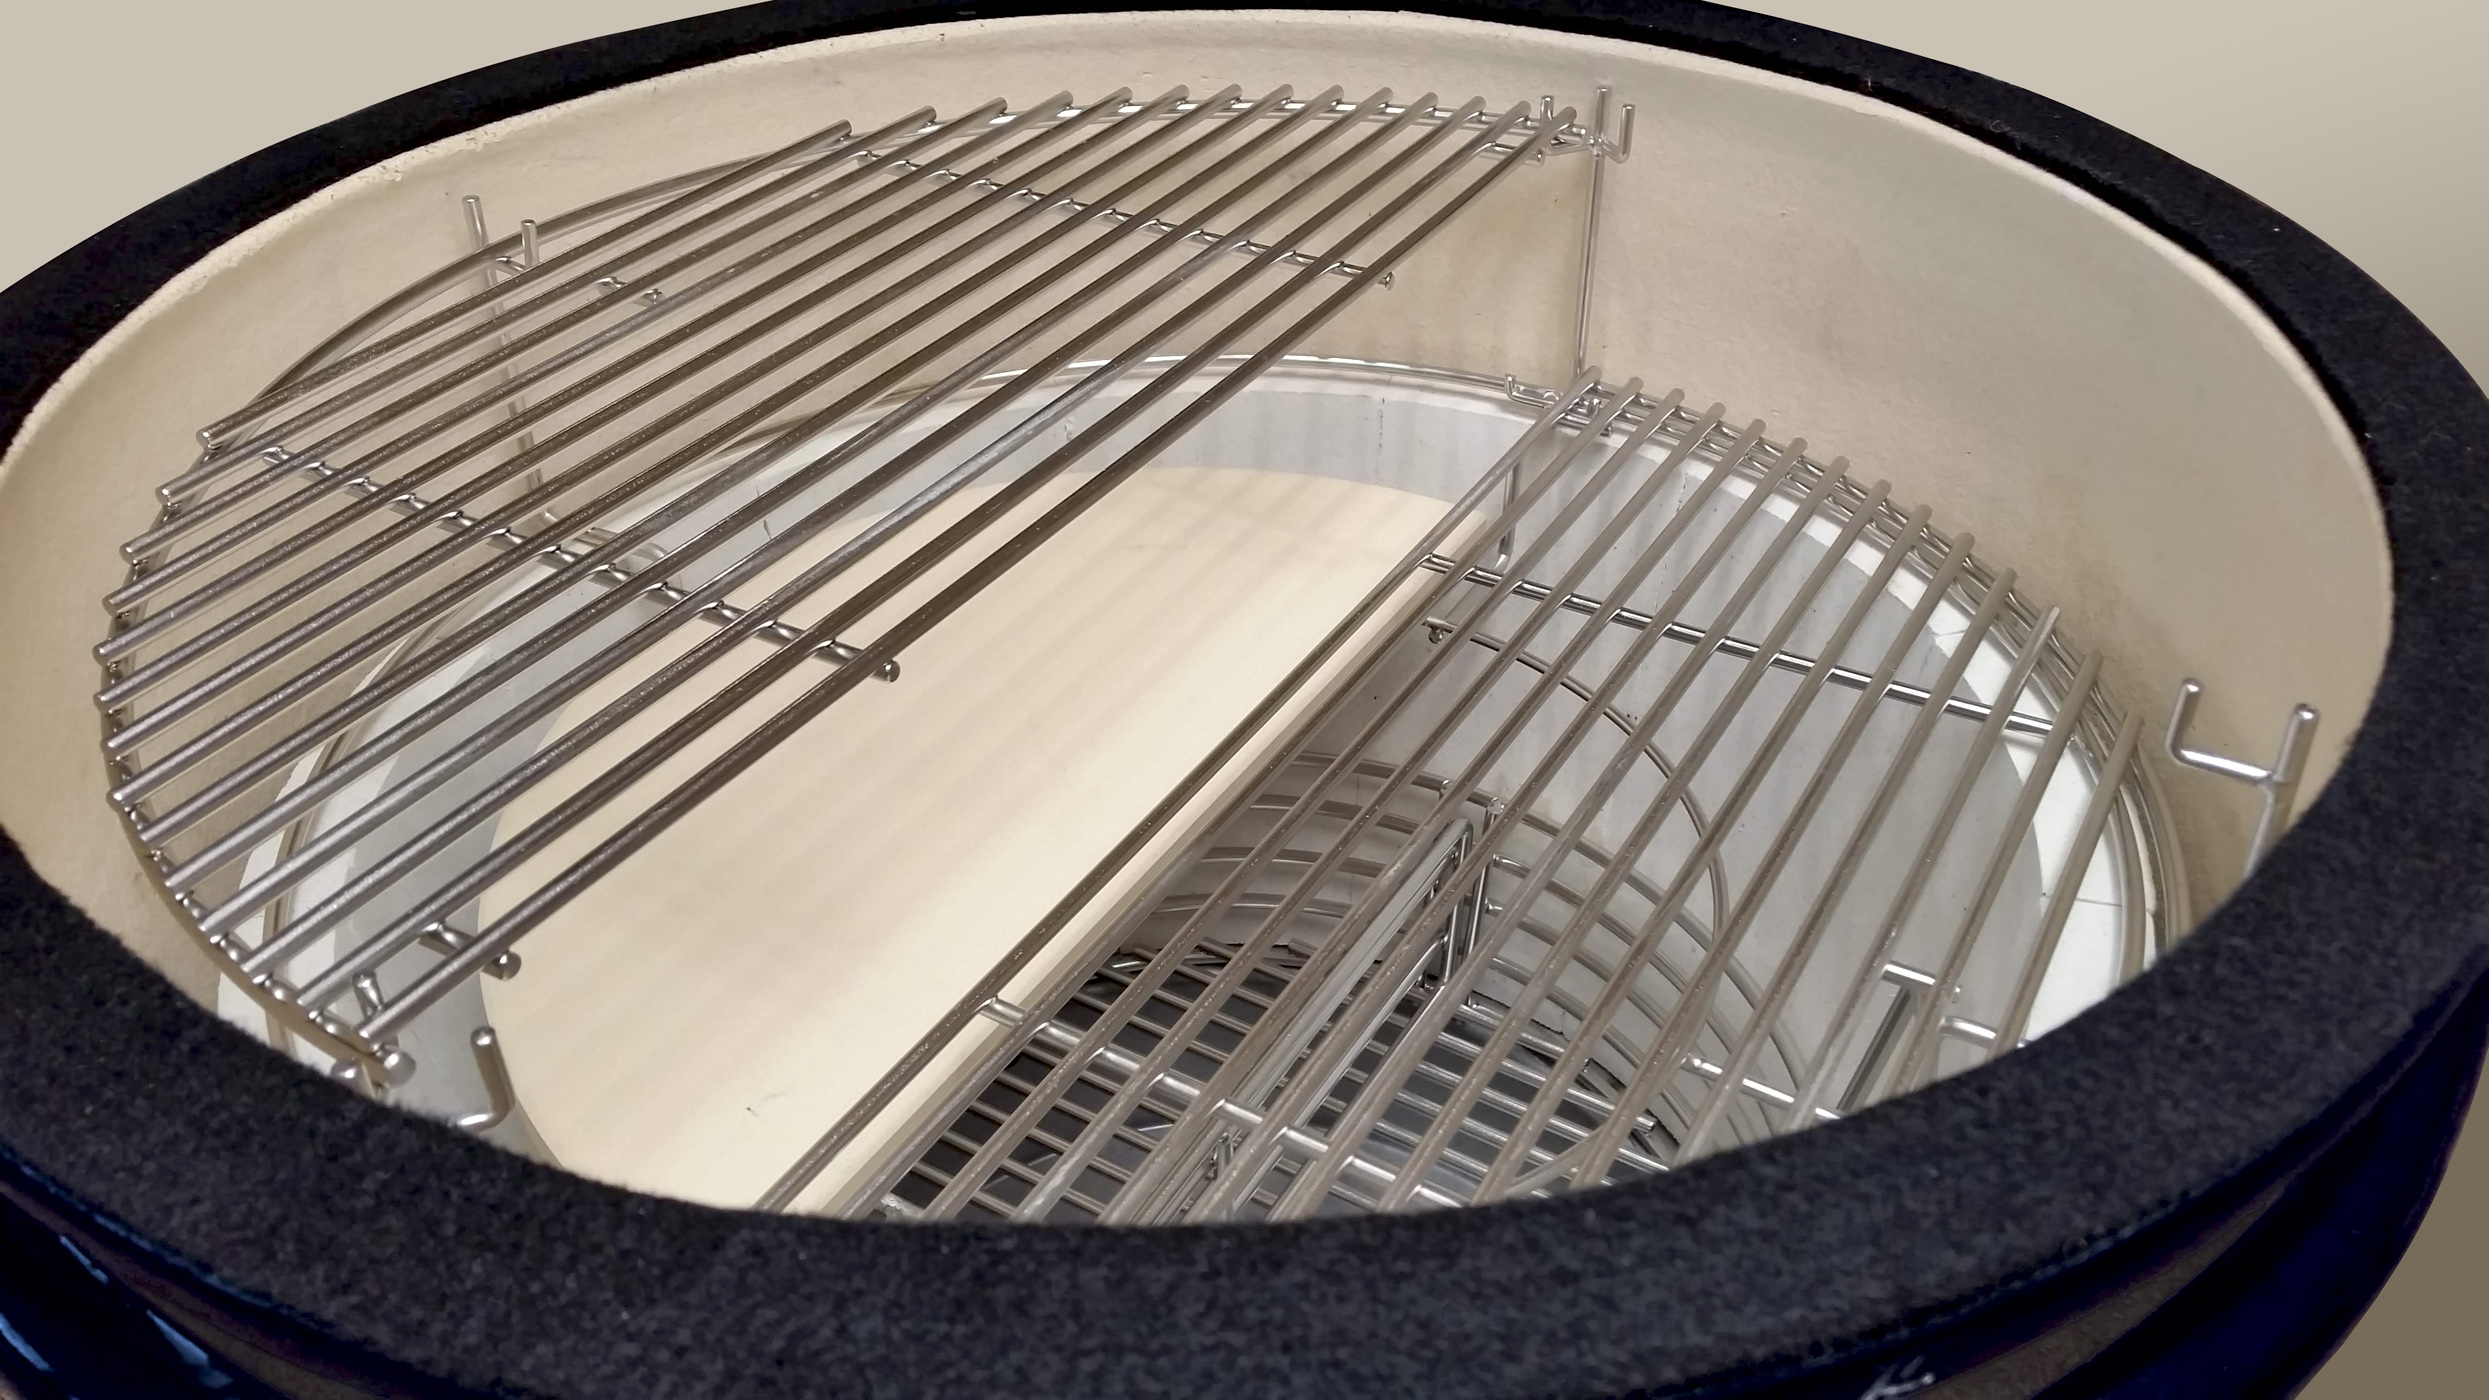 The multi level cooking system is shown with one grid at the top and one grid at the bottom; a half two piece heat deflector piece is below the grid sitting at the top of the system